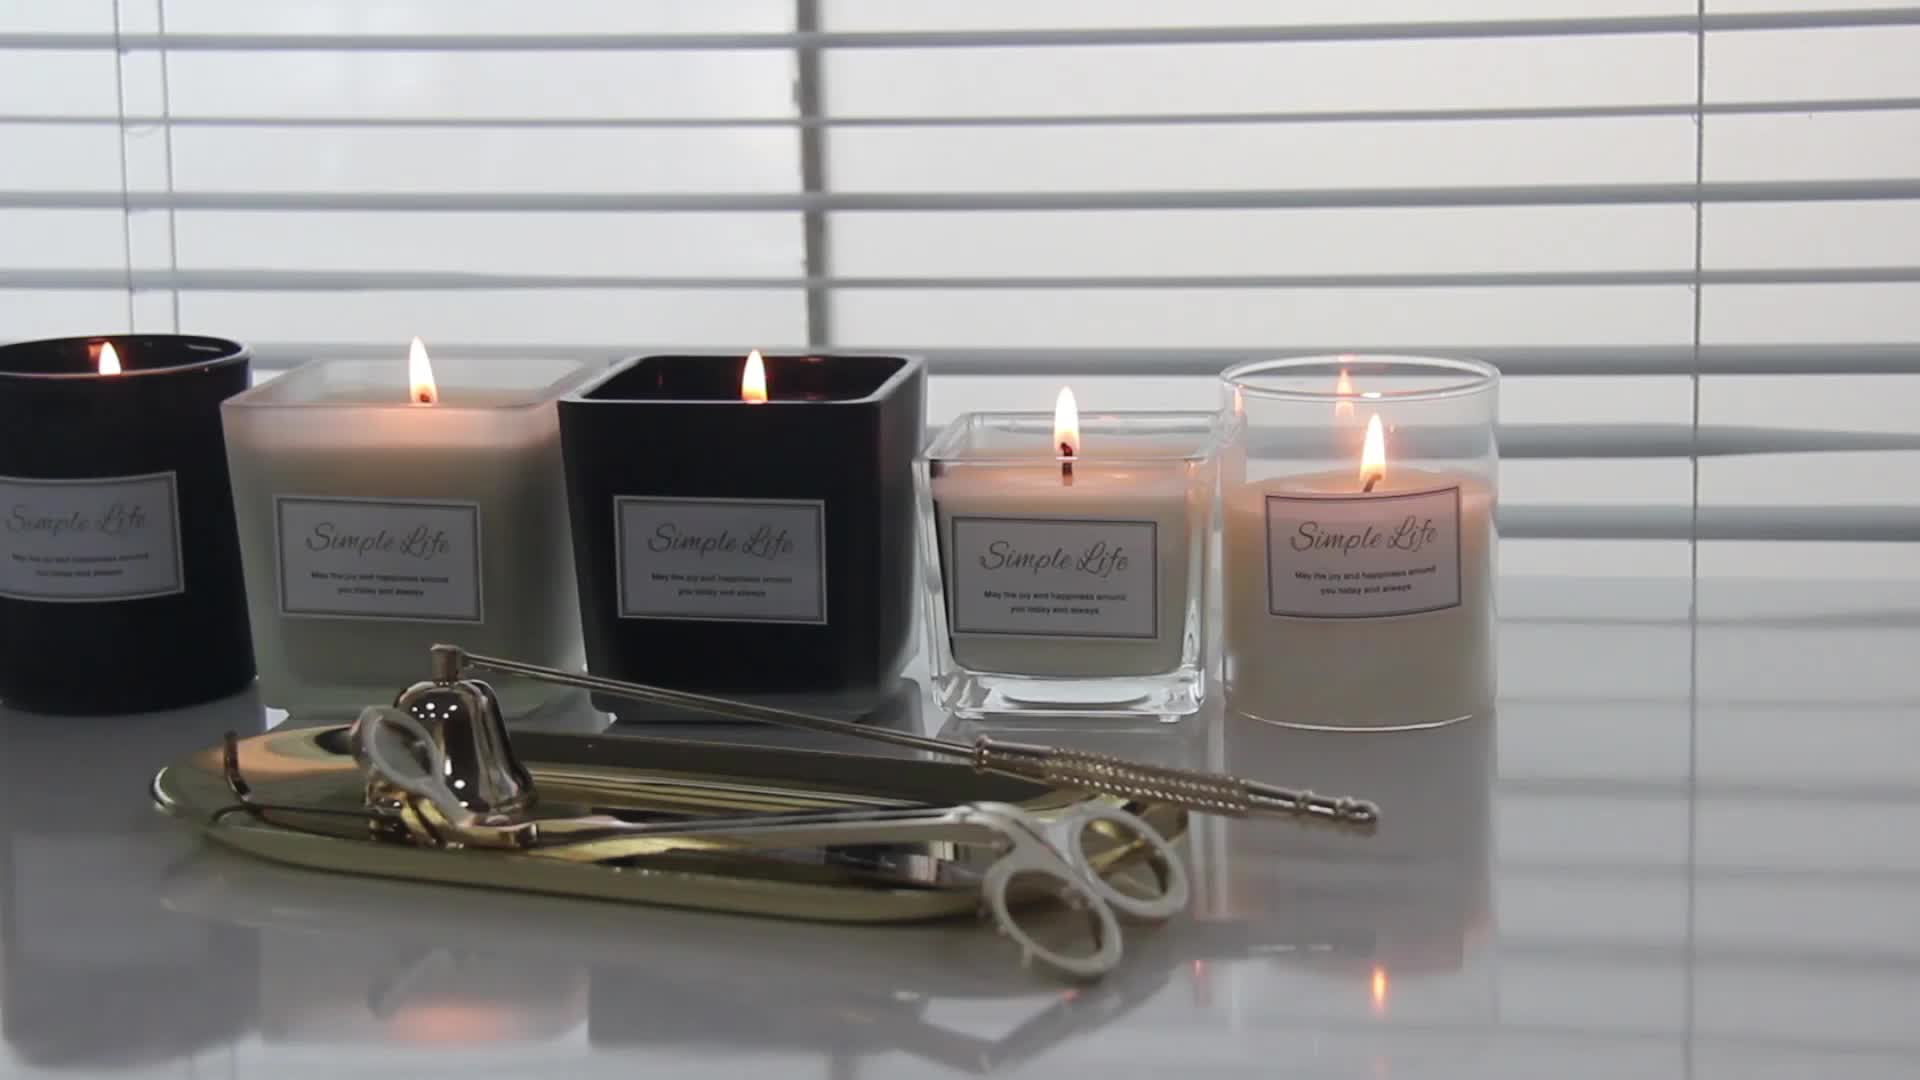 Smokeless Natural Aromatherapy Frosted Scented Candle Soy Wax Romantic Candle Jars